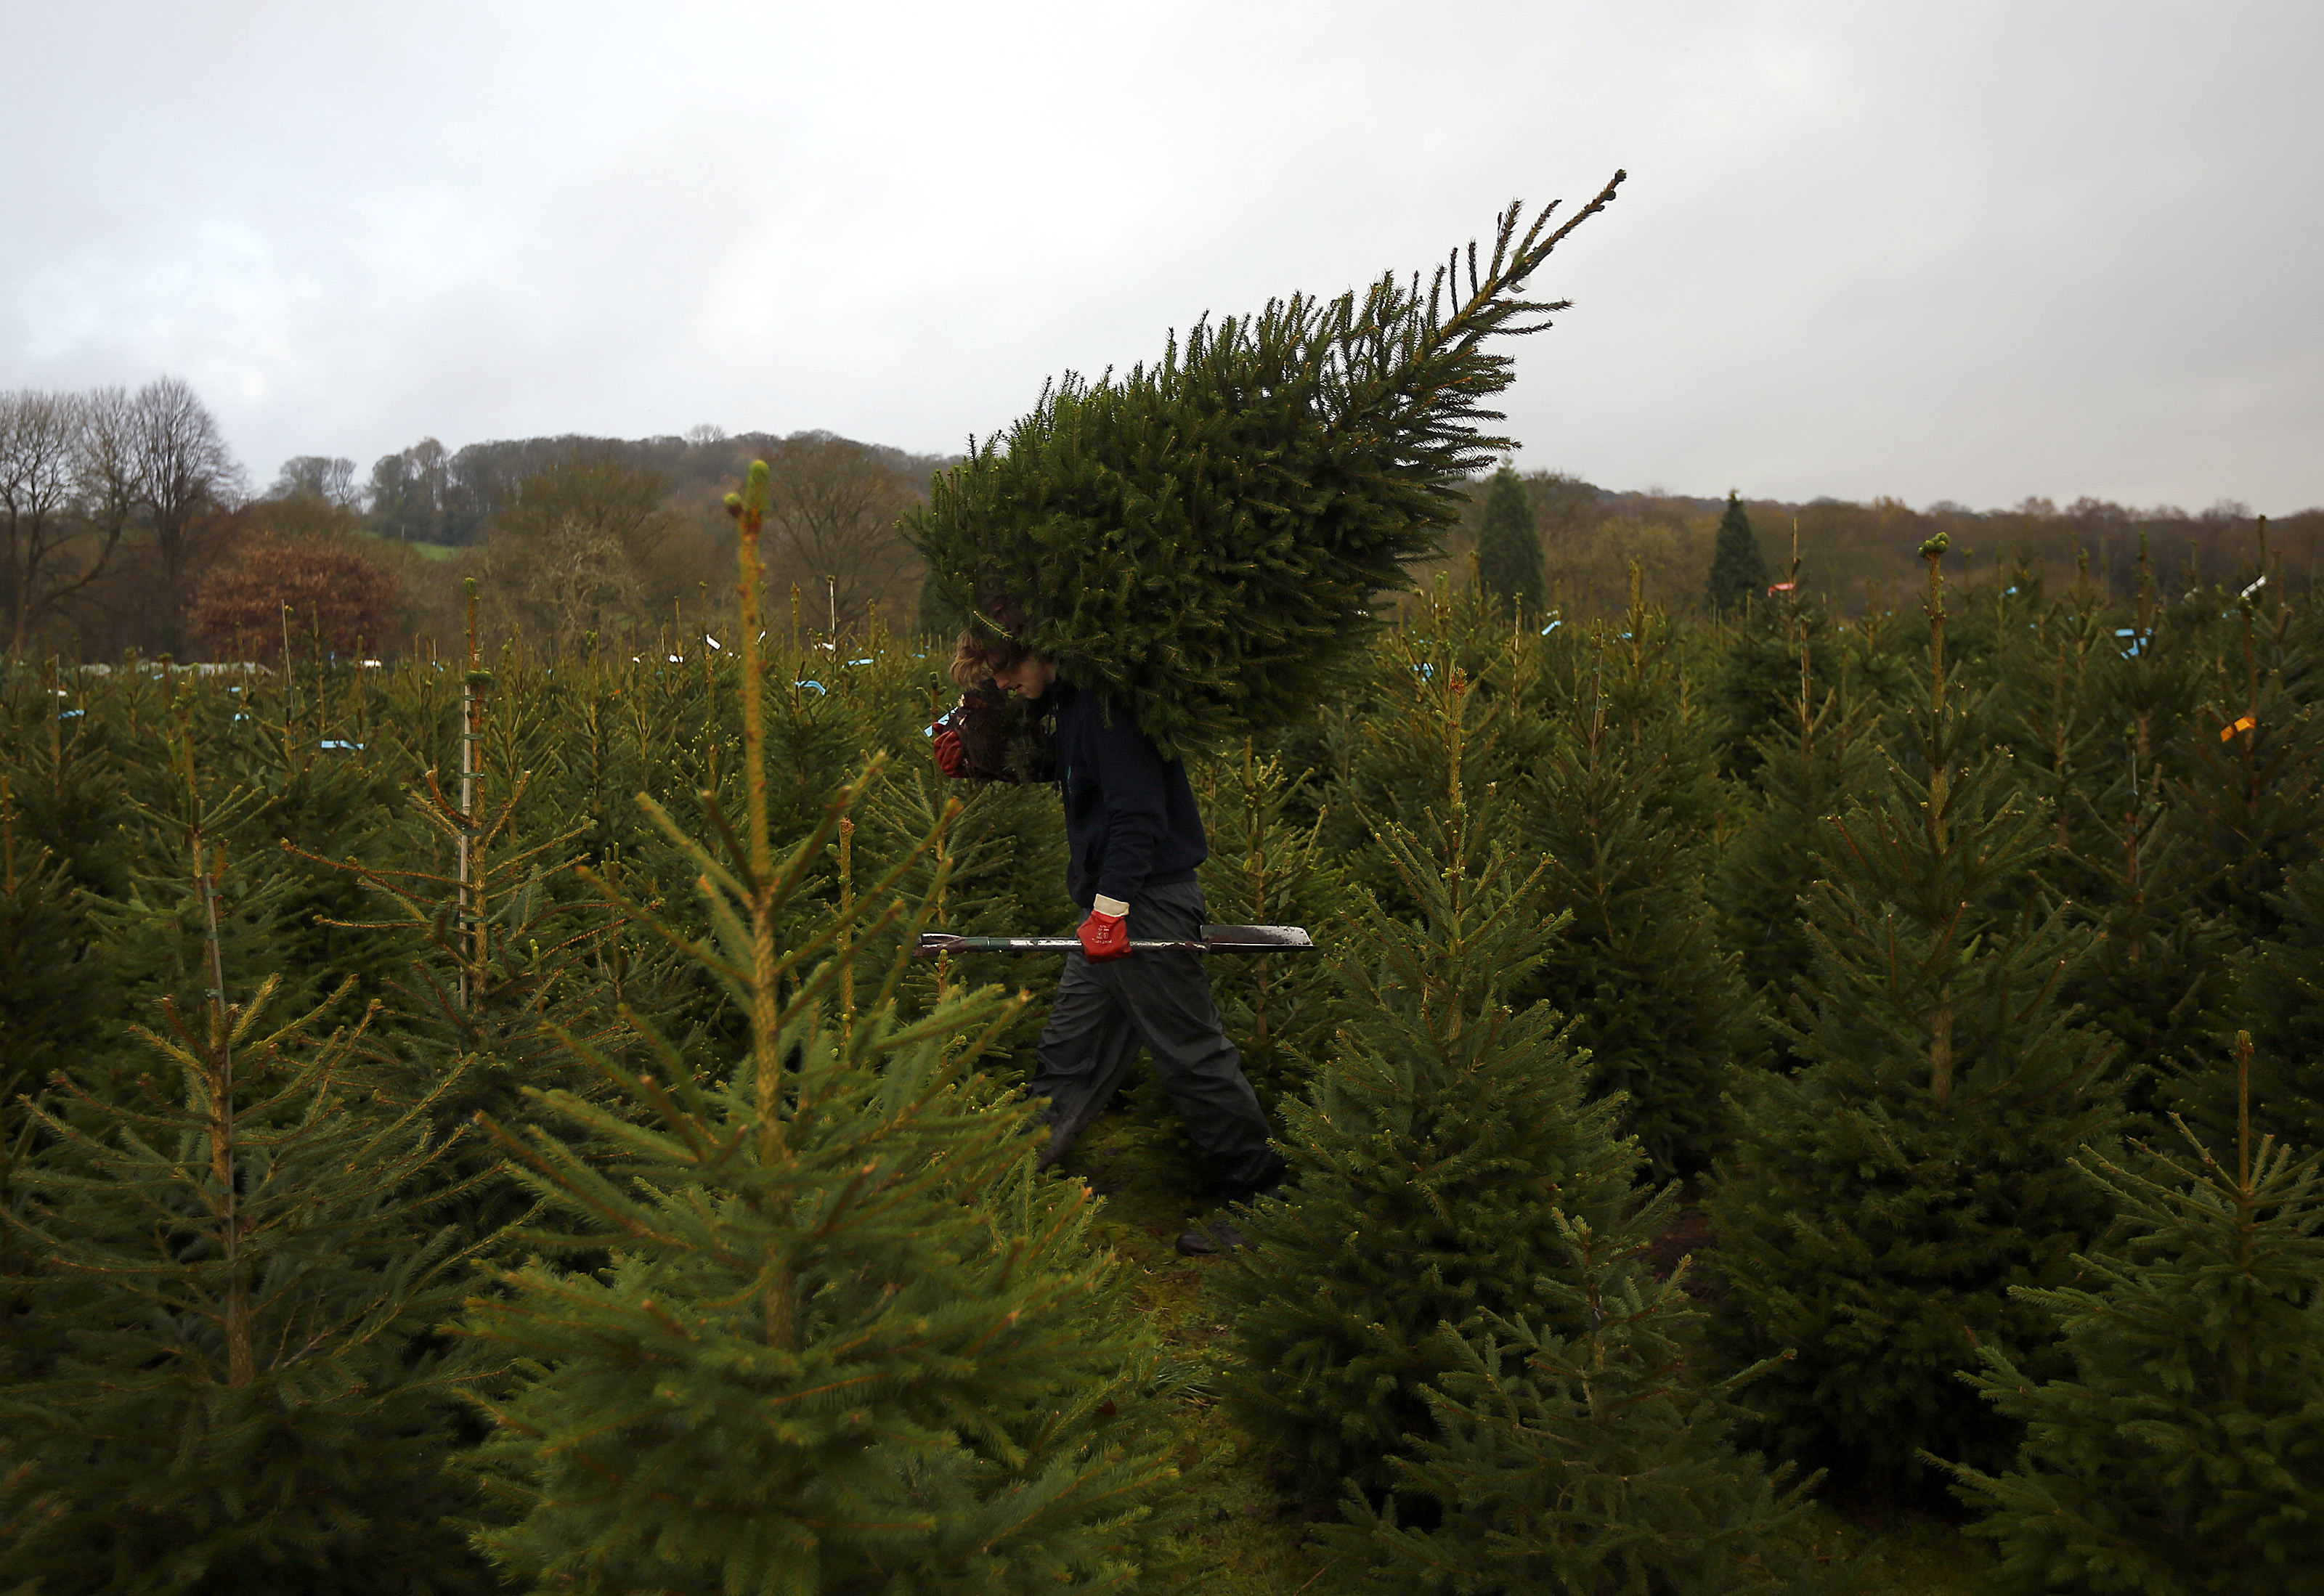 How to buy a real christmas tree purchase and care tips to make sure you get the best this year - Tips to care for a natural christmas tree ...